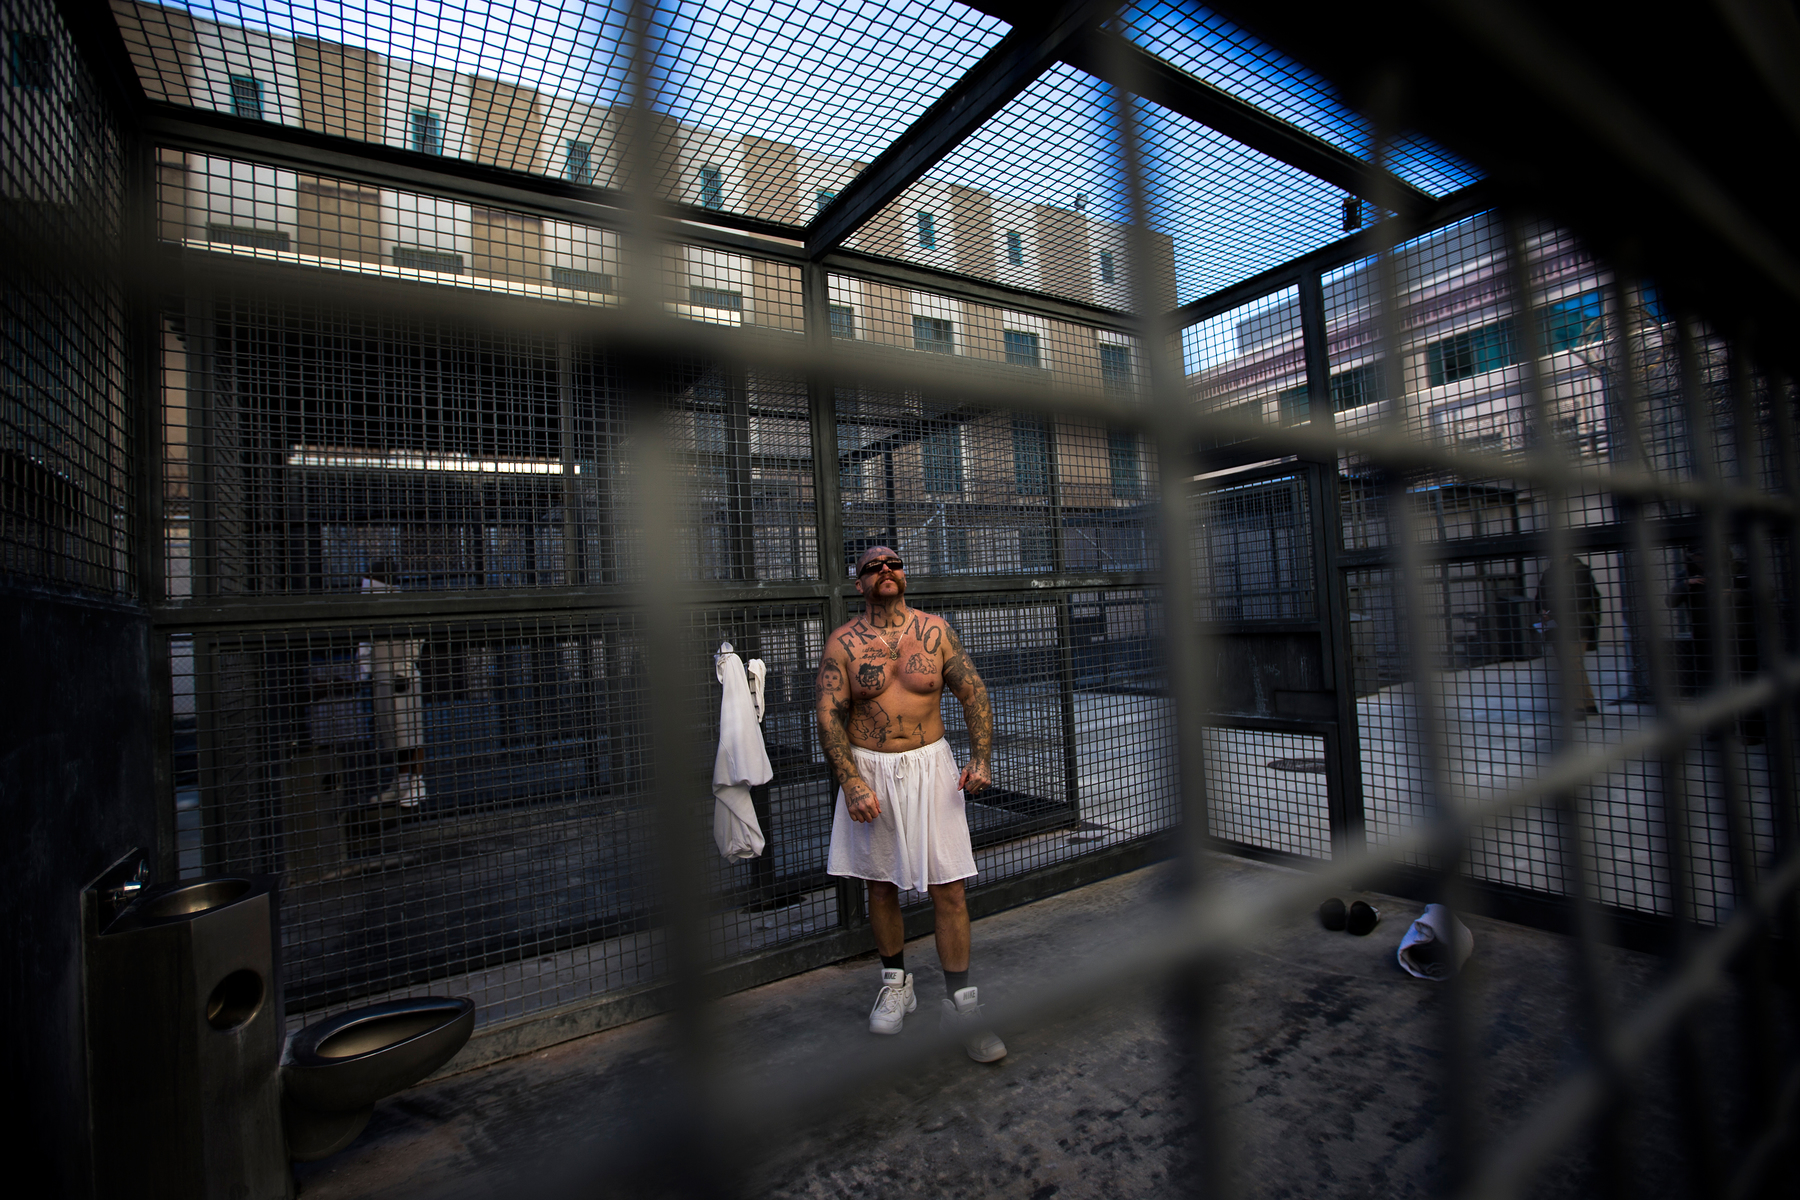 Robert Galvan, who is on death row for murder, exercises at the Adjustment Center